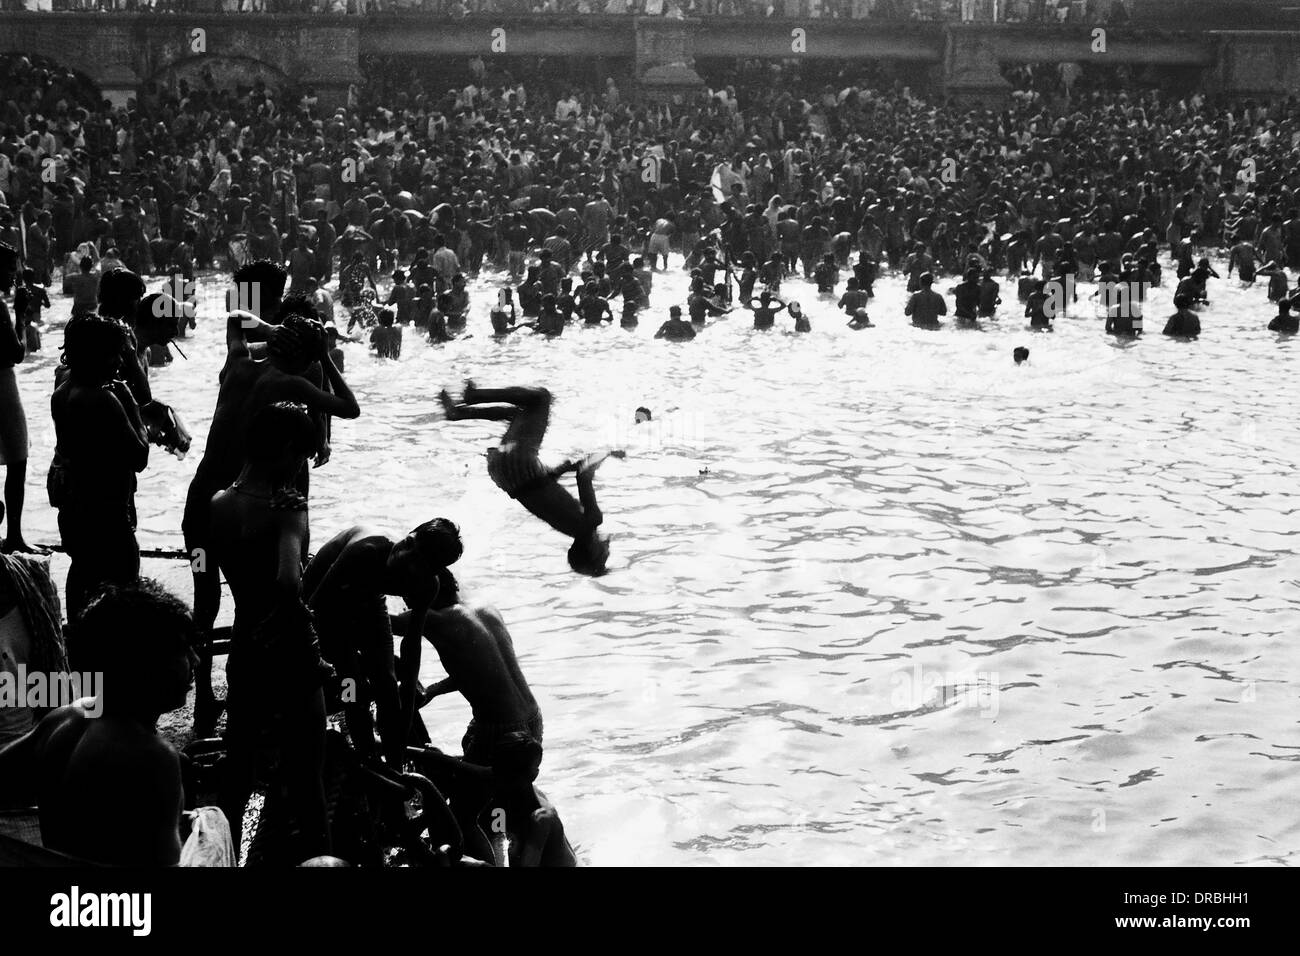 Boy diving summersault, Makar Sankranti, la rivière Hoogly, Kolkata, Bengale occidental, Inde, 1977 Photo Stock